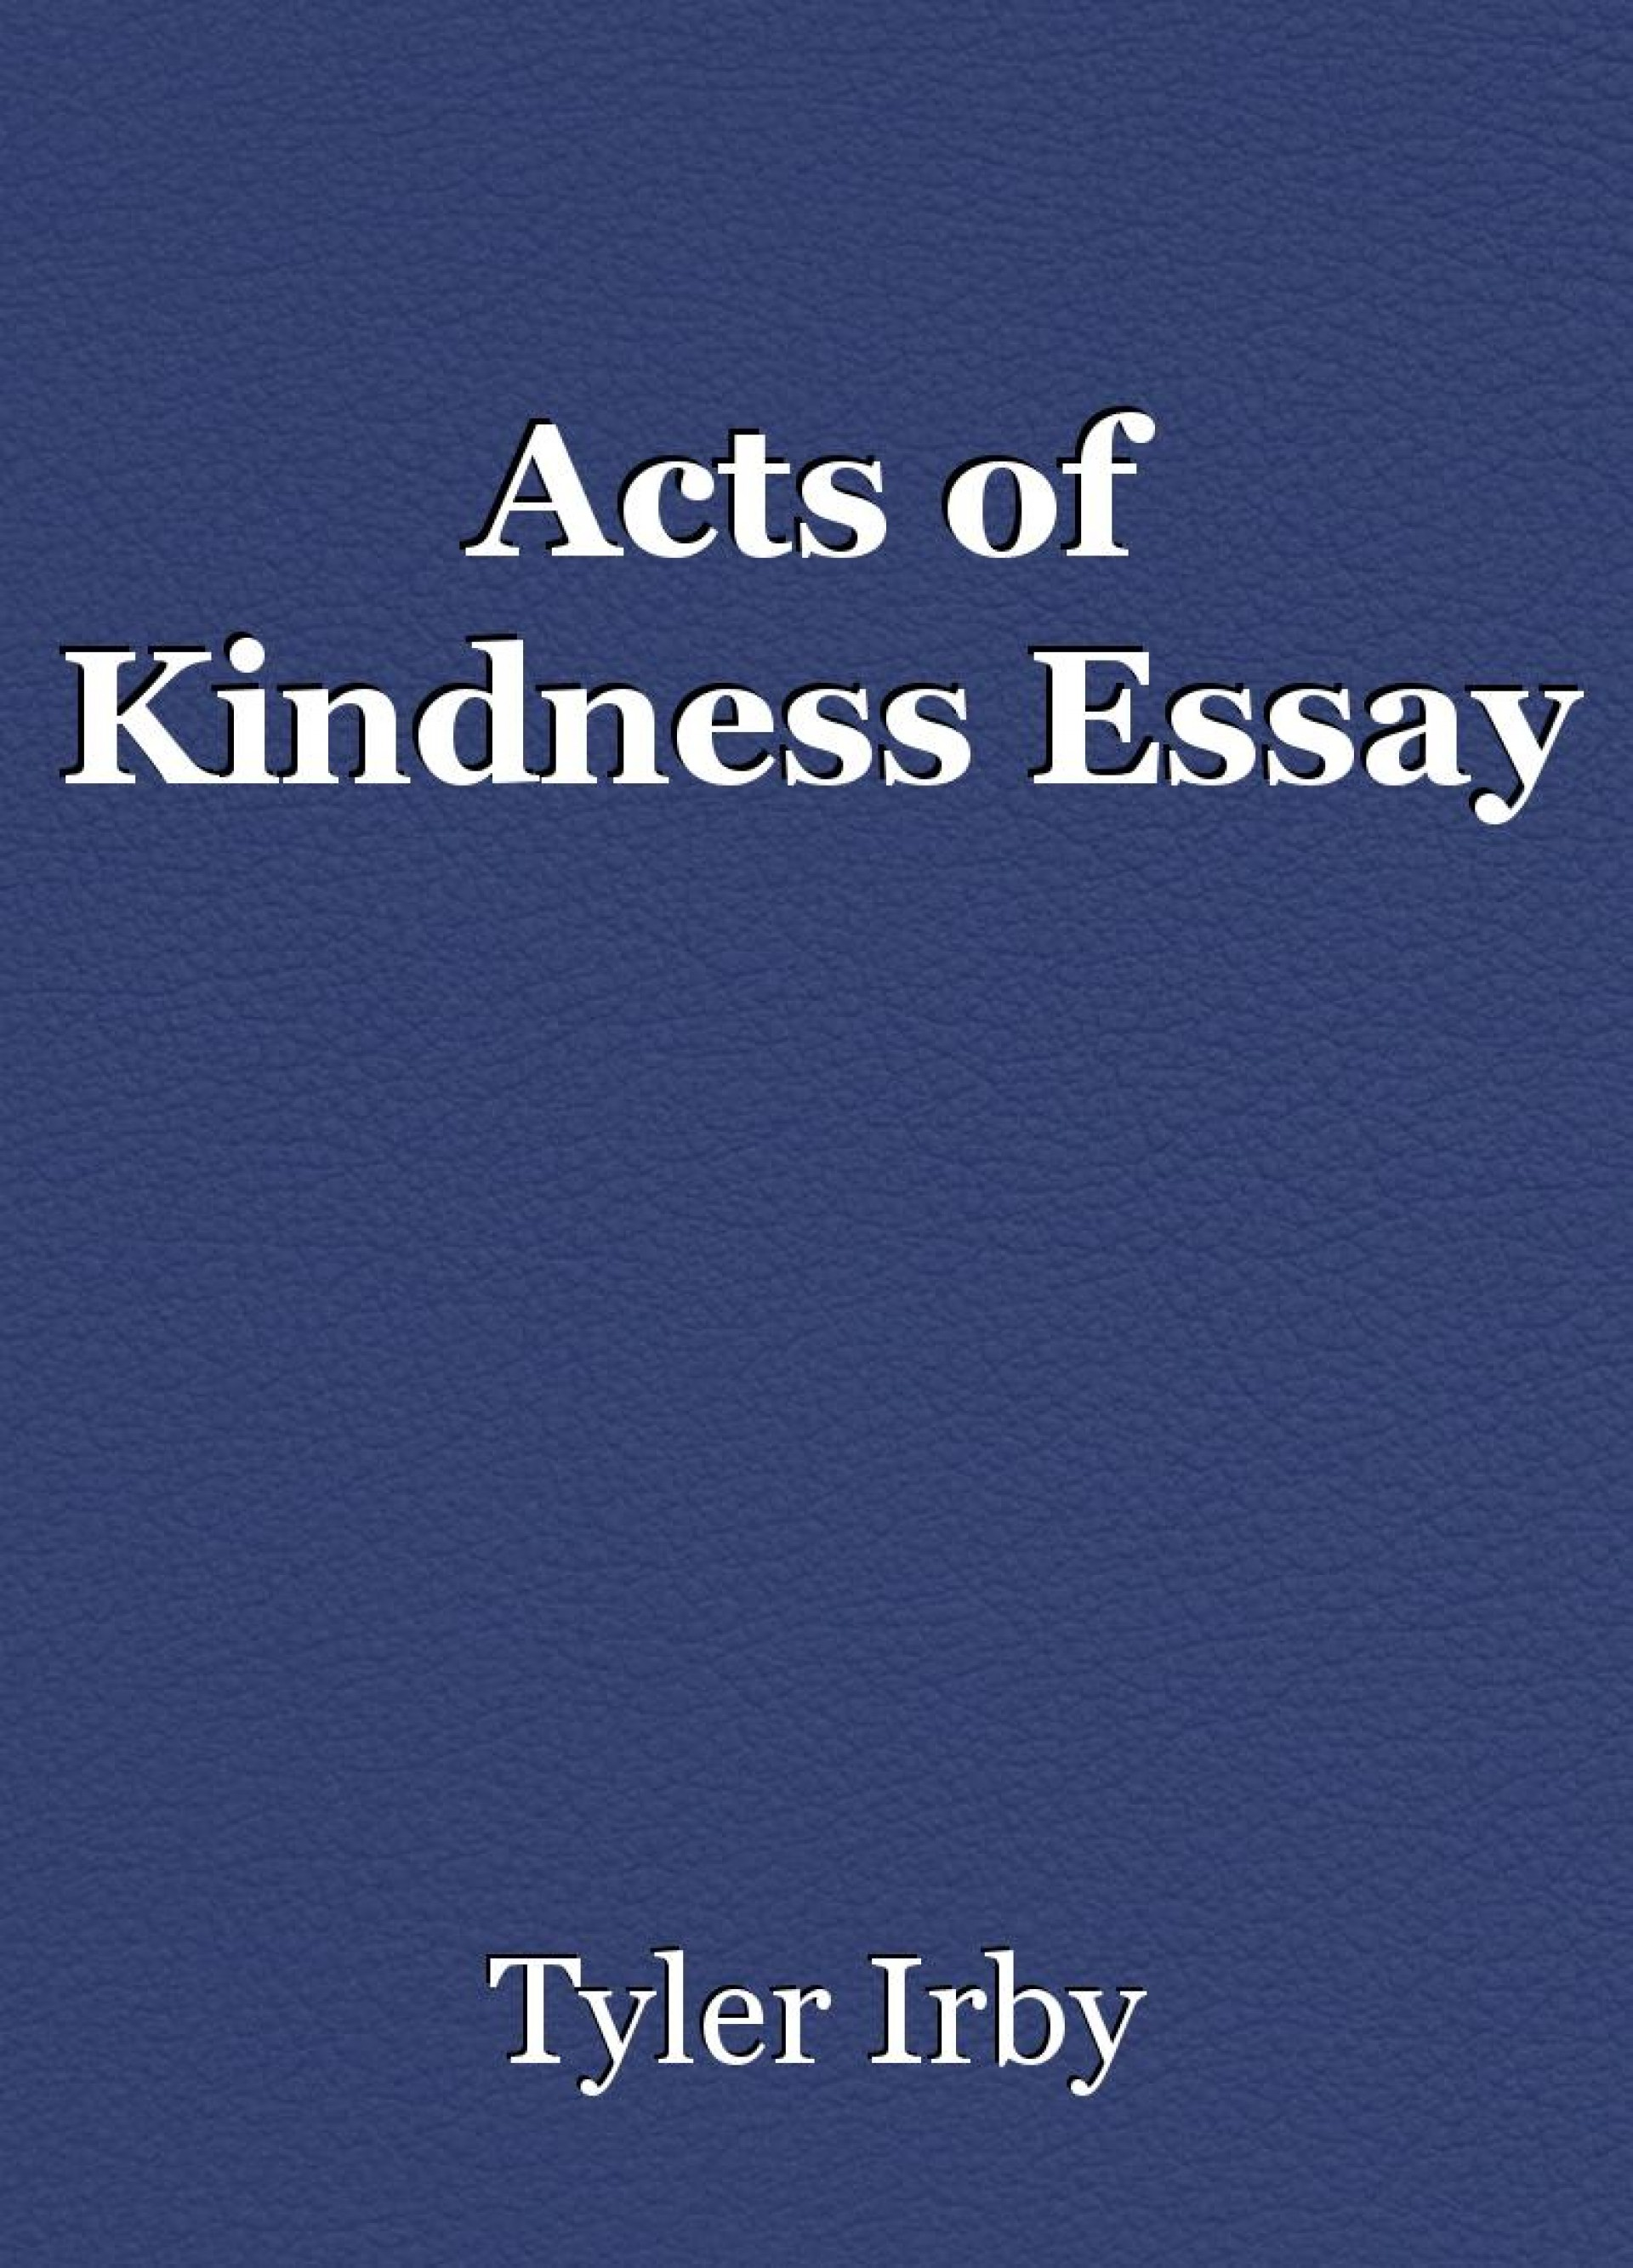 014 Essay Example 498916 Acts Of Staggering Kindness Writing Prompts First Grade For Class 5 Titles 1920